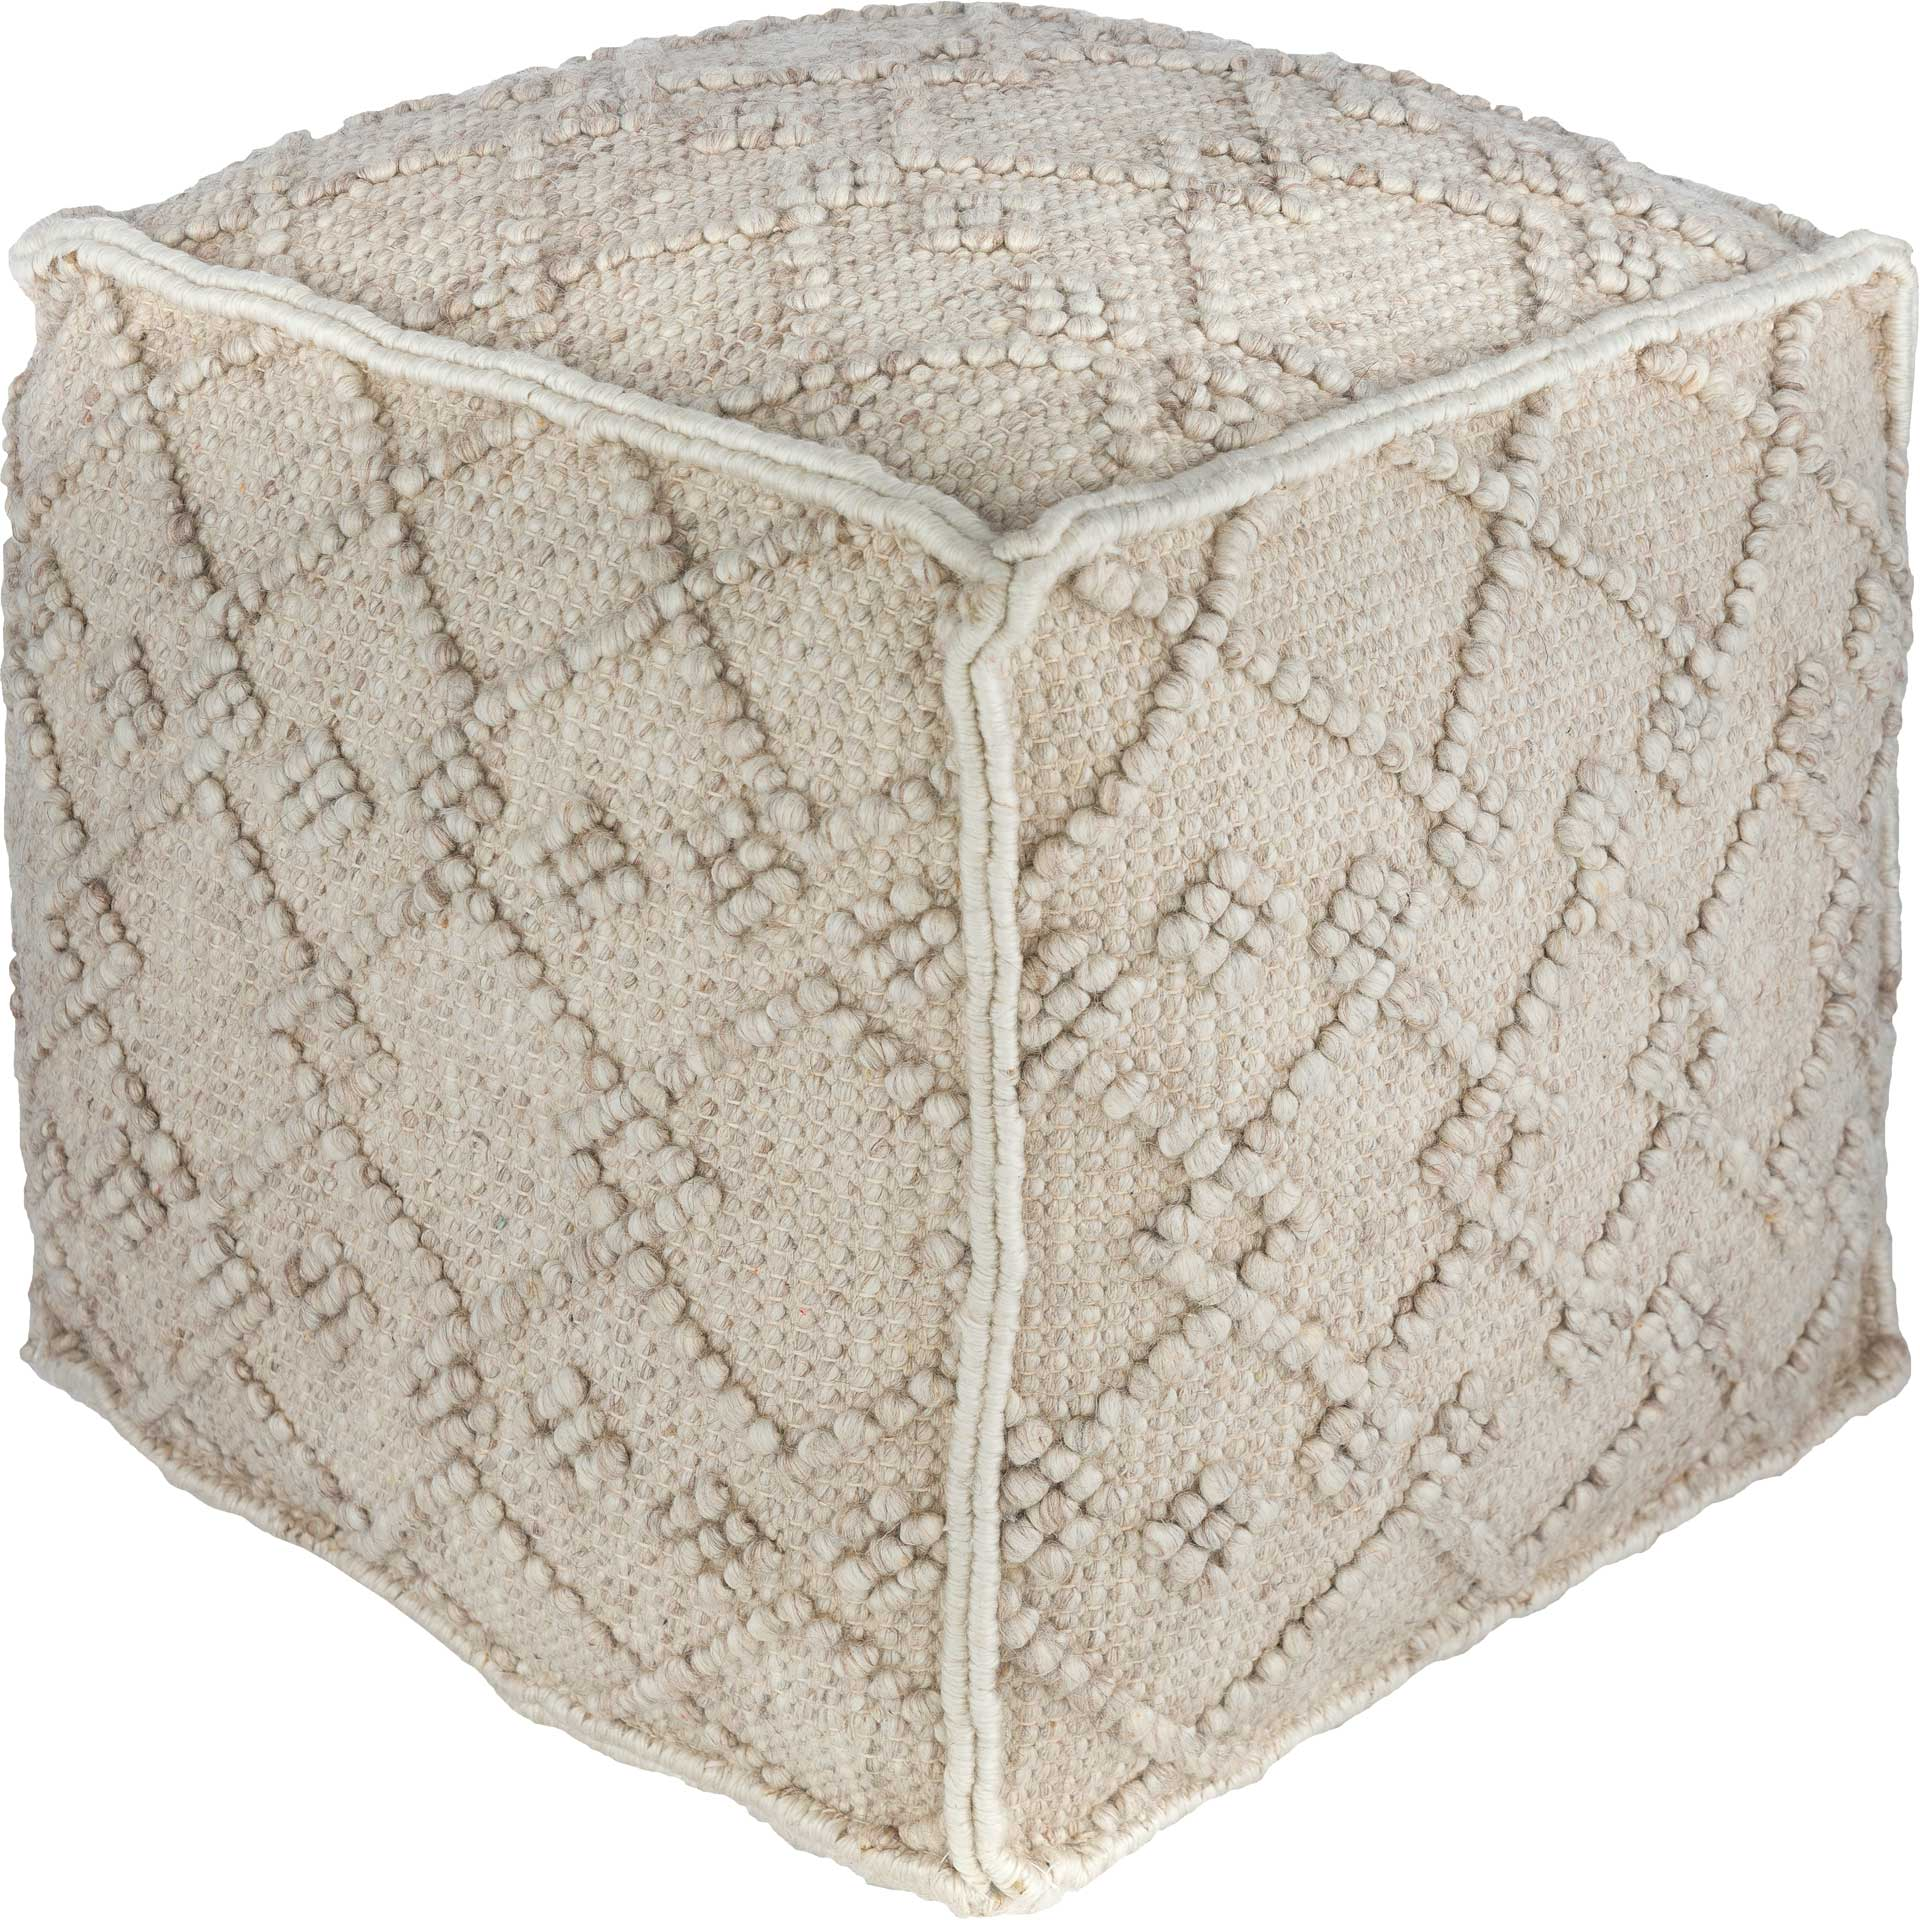 Hugo Pouf White/Charcoal